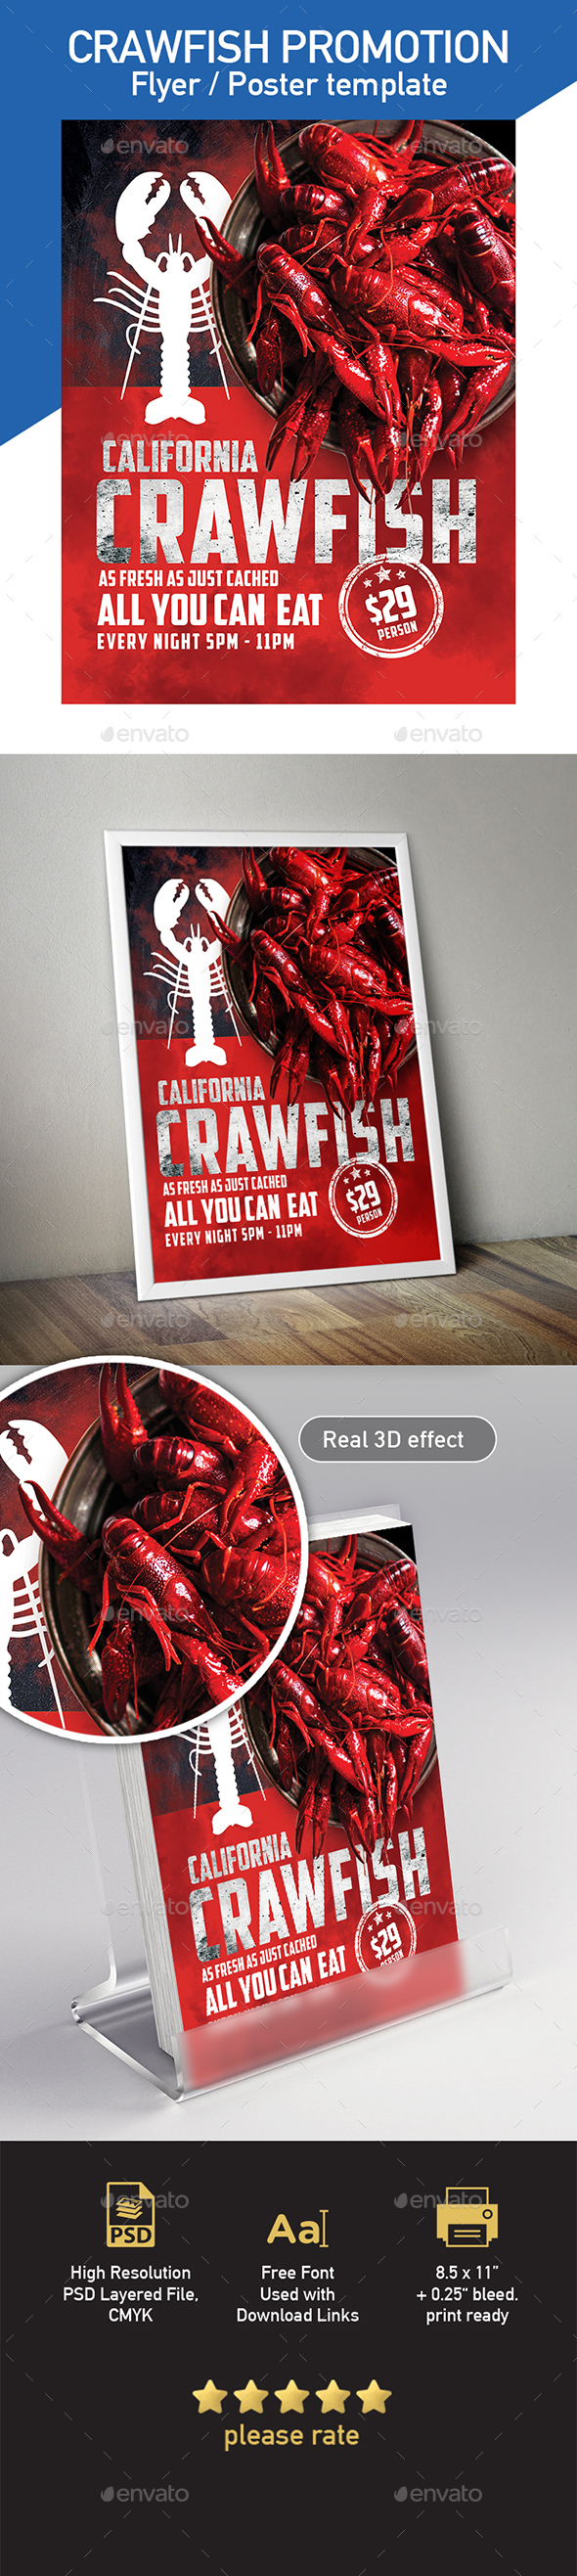 Crawfish Flyer/ Poster Template - Flyers Print Templates